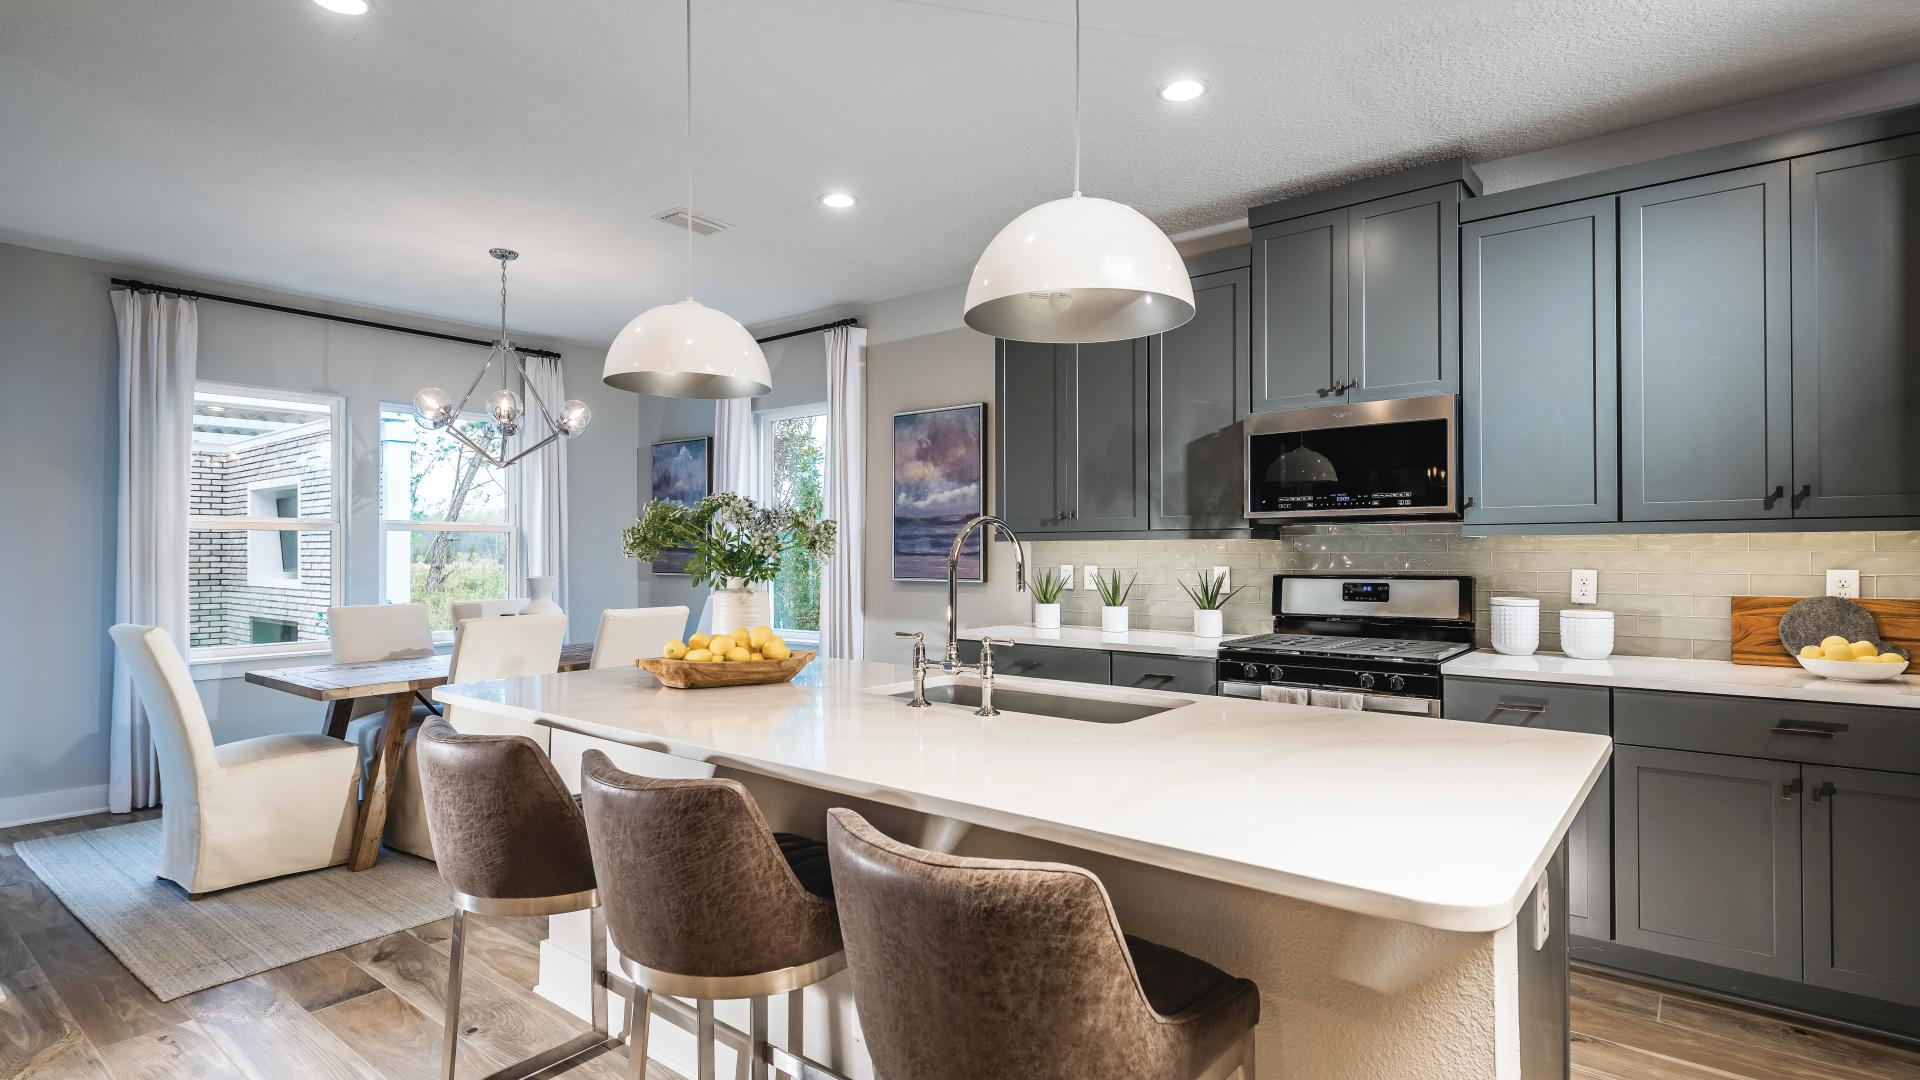 Well-designed kitchen layouts perfect for entertaining